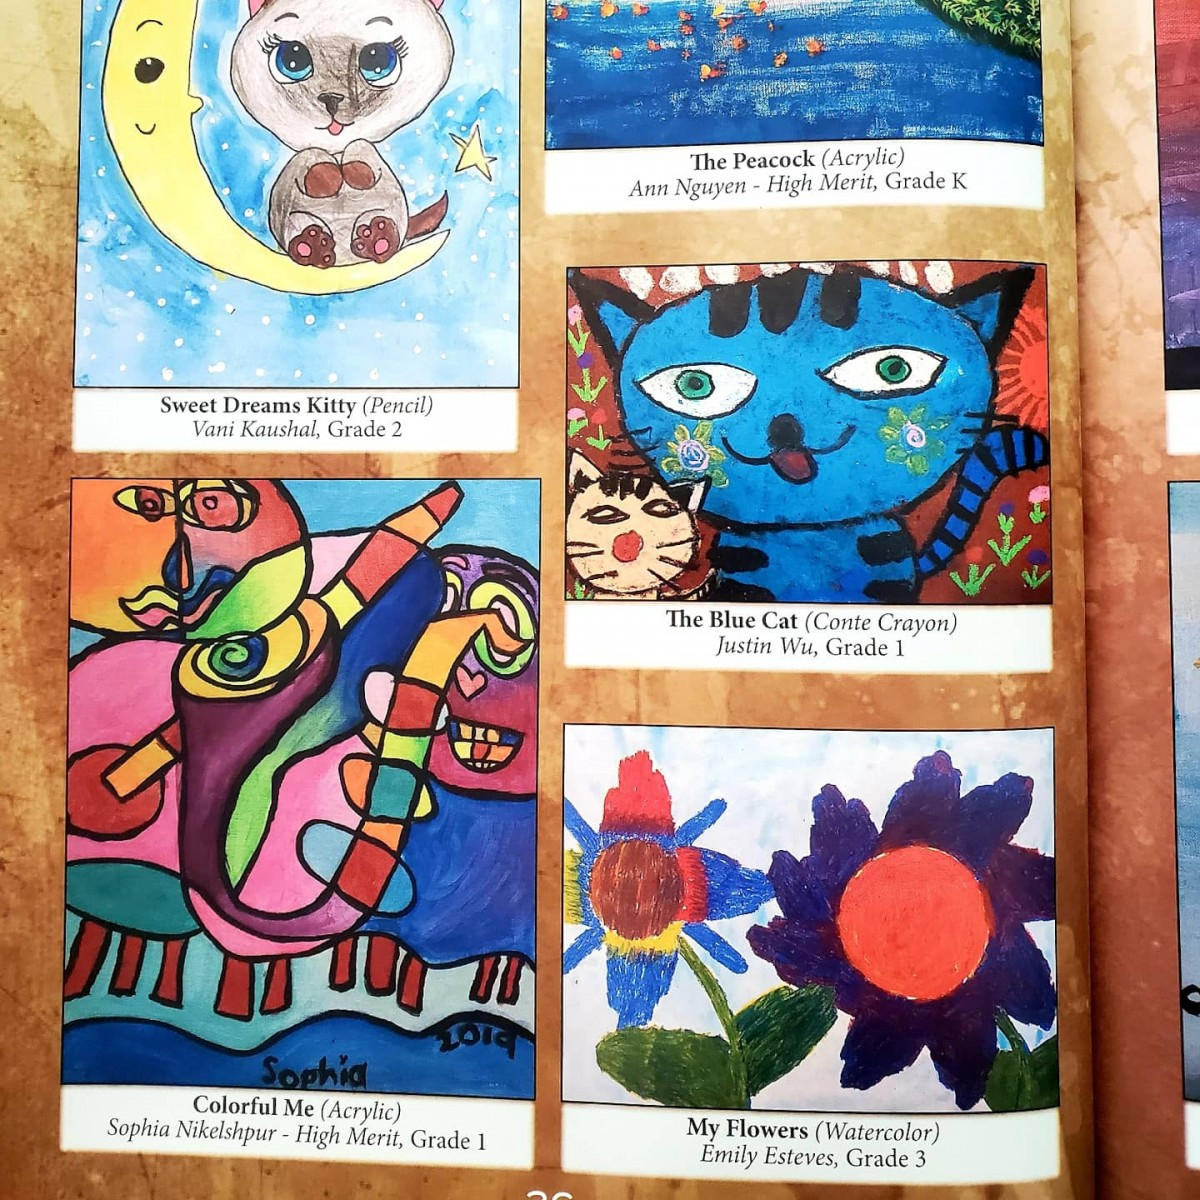 Pages of the book with artwork submitted by Meadow Hill scholars.